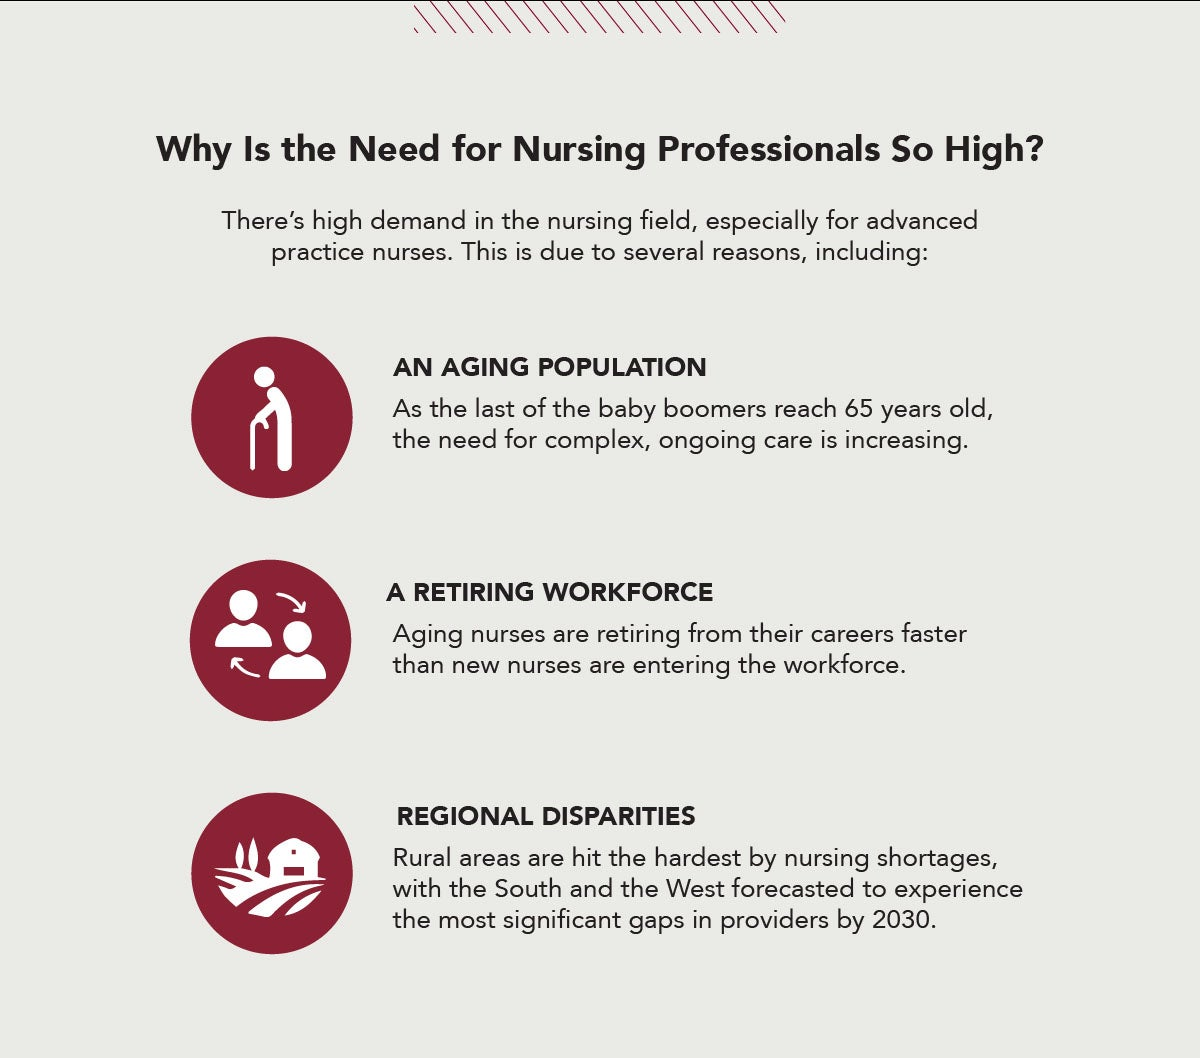 An aging population, retiring workforce, & regional disparities are driving the high demand in the nursing field